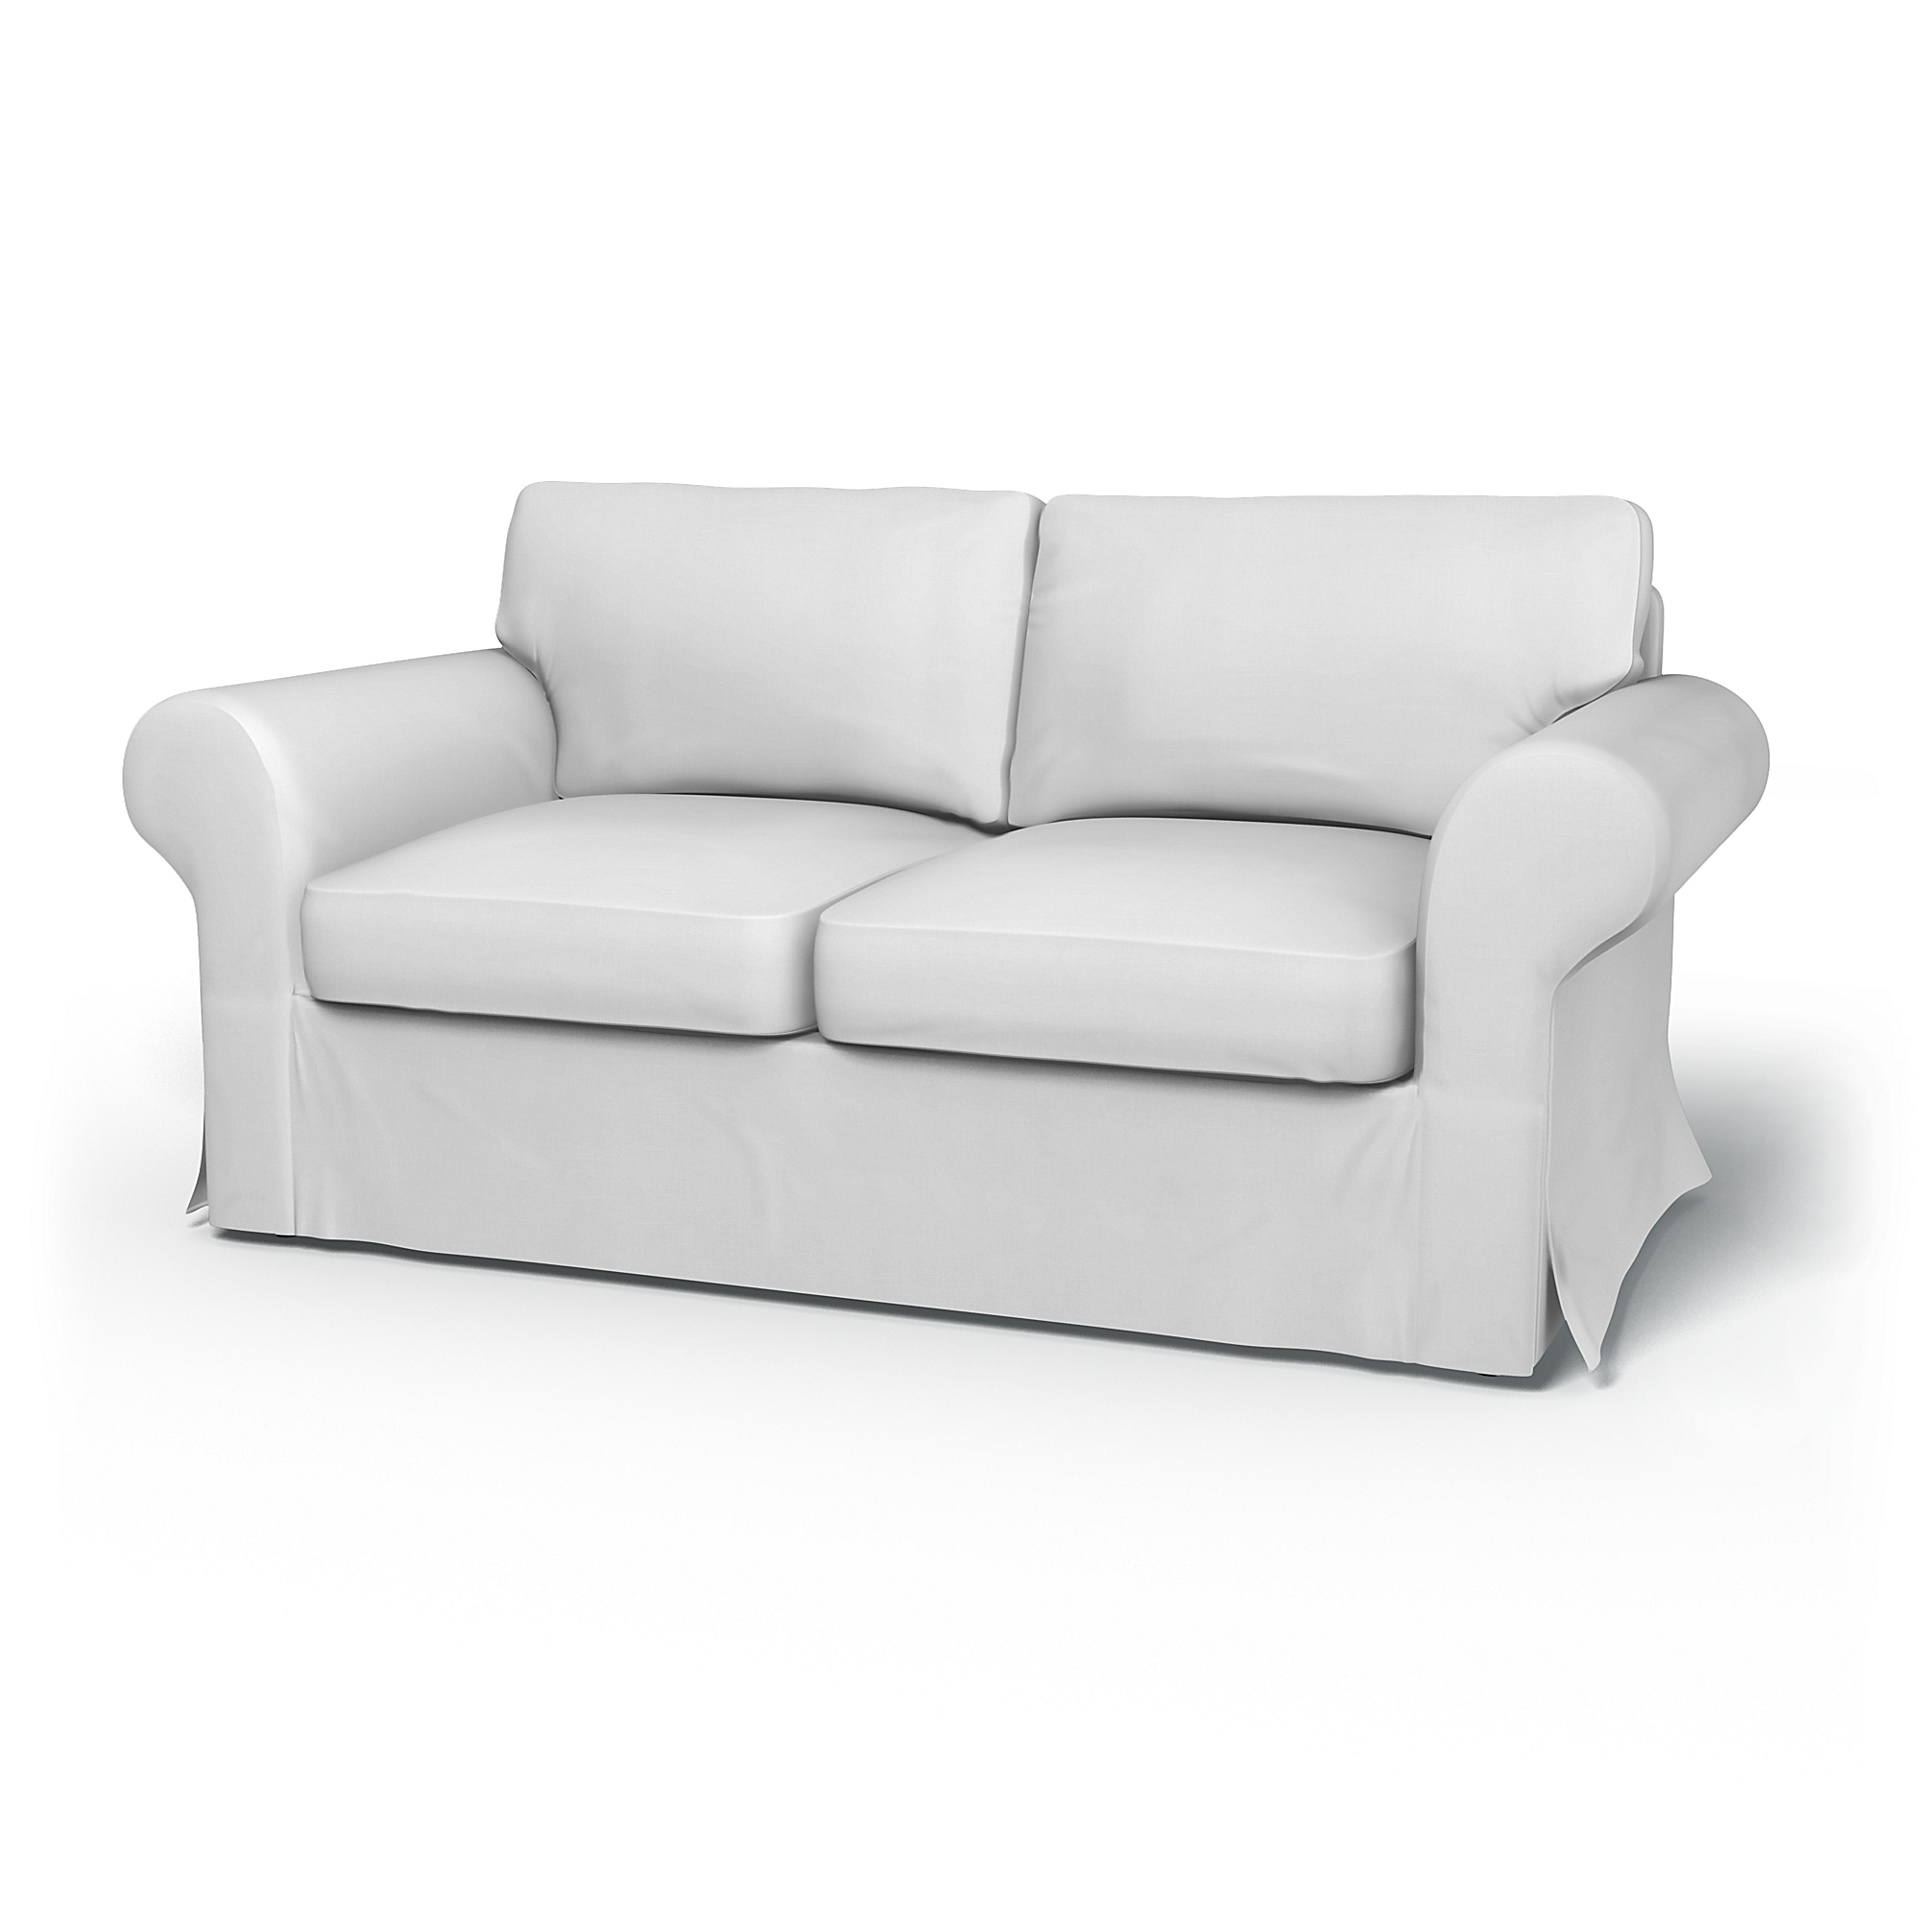 Full Size of Ektorp Sofa Cover Red Ikea With Chaise Slipcover At White Dimensions Bed Assembly Instructions 3 Seat Length Sectional Grau Stoff Mit Verstellbarer Sitztiefe Sofa Ektorp Sofa